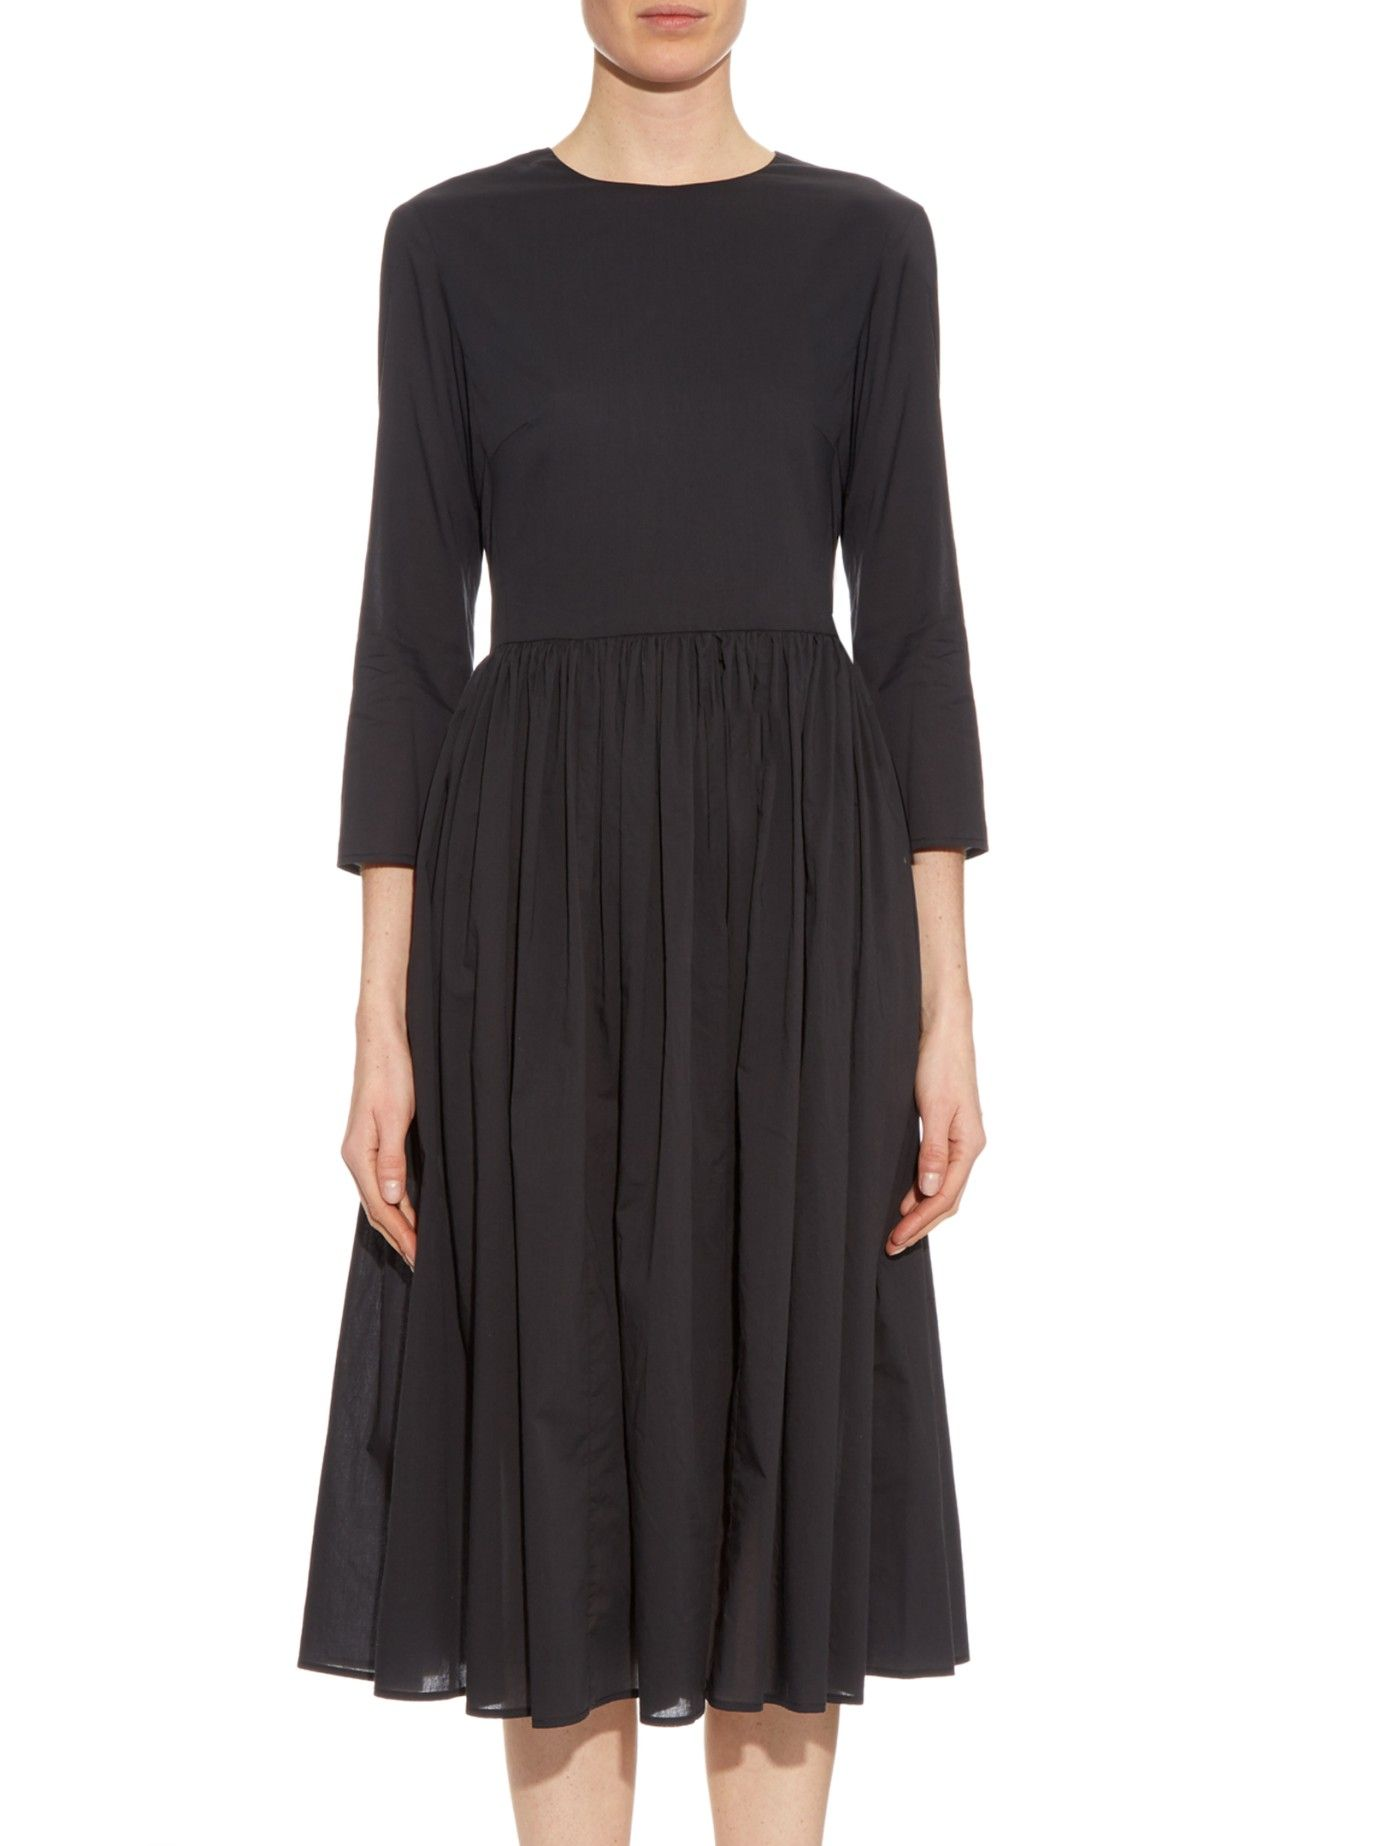 Cotton-voile gathered dress   Brock Collection